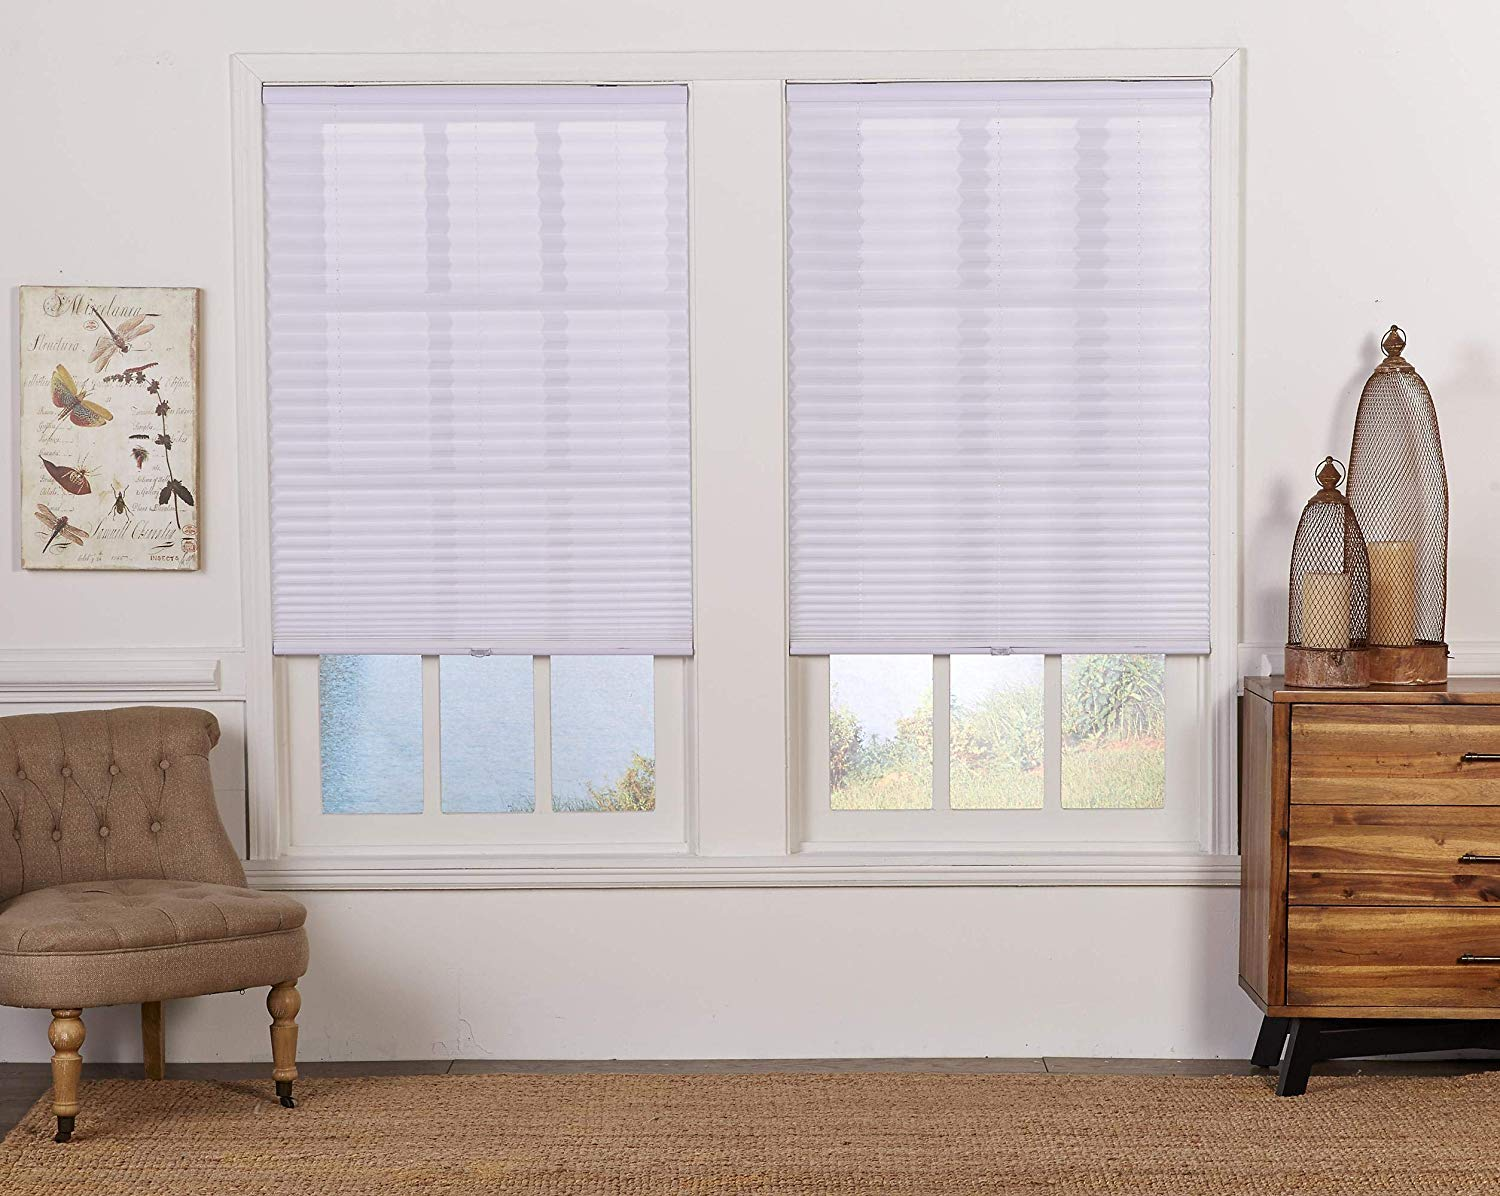 White 35W x 48L Inches DEZ Furnishings QDWT350480 Cordless Light Filtering Pleated Shade